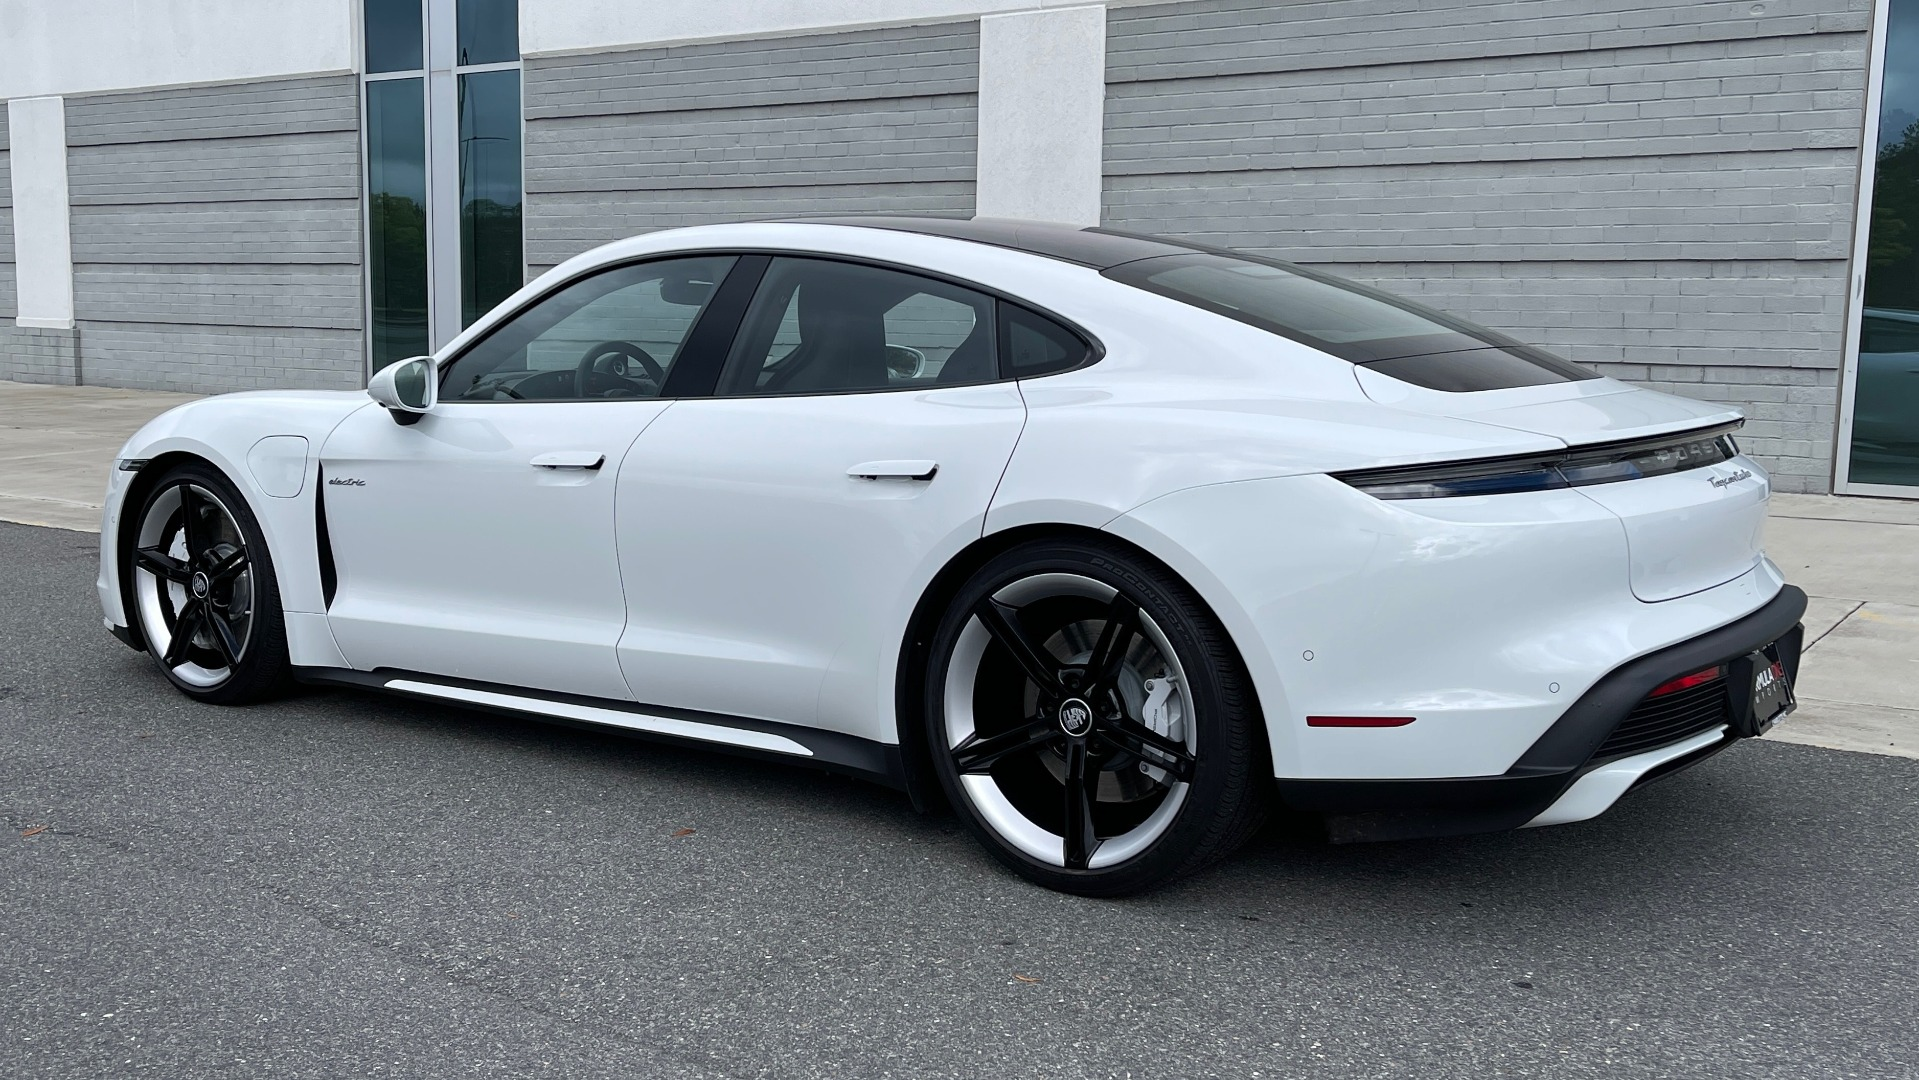 Used 2020 Porsche TAYCAN TURBO SEDAN / AWD / NAV / BOSE / PANO-ROOF / LCA / SURROUND VIEW for sale $162,995 at Formula Imports in Charlotte NC 28227 4